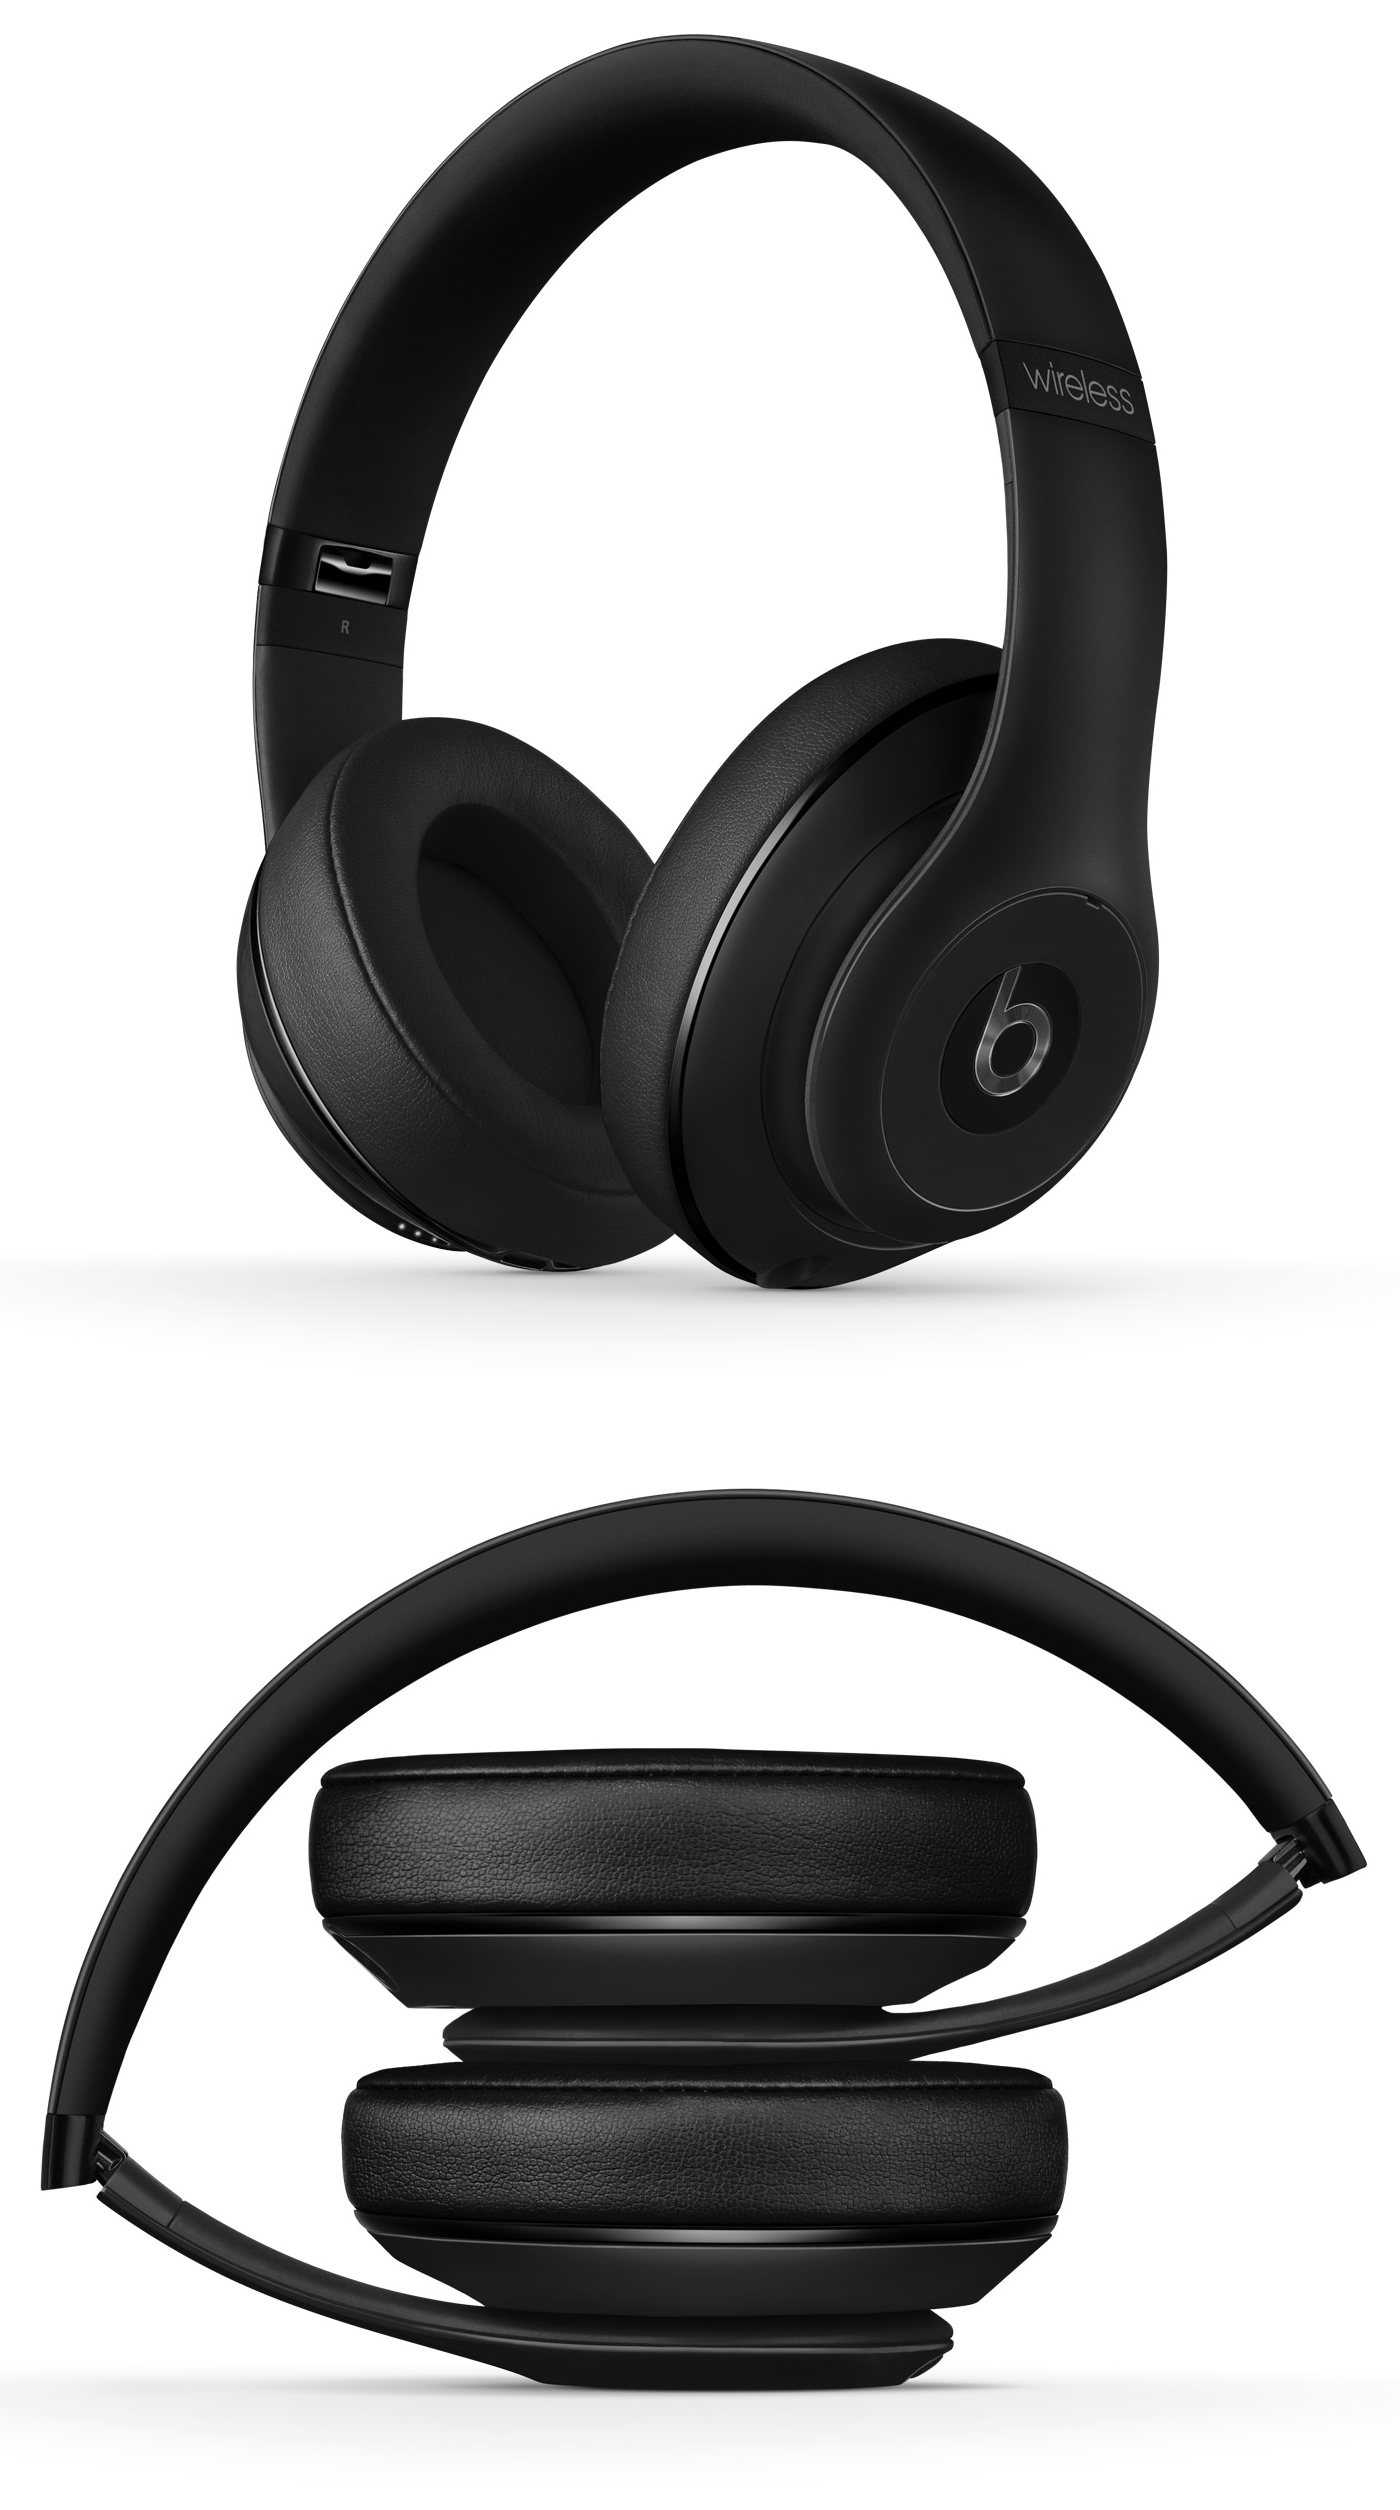 Beats Studio Wireless Matte Black Im Not Really A Guy But Headset Bluetooth Hd Solo These Look Like Good Headphones